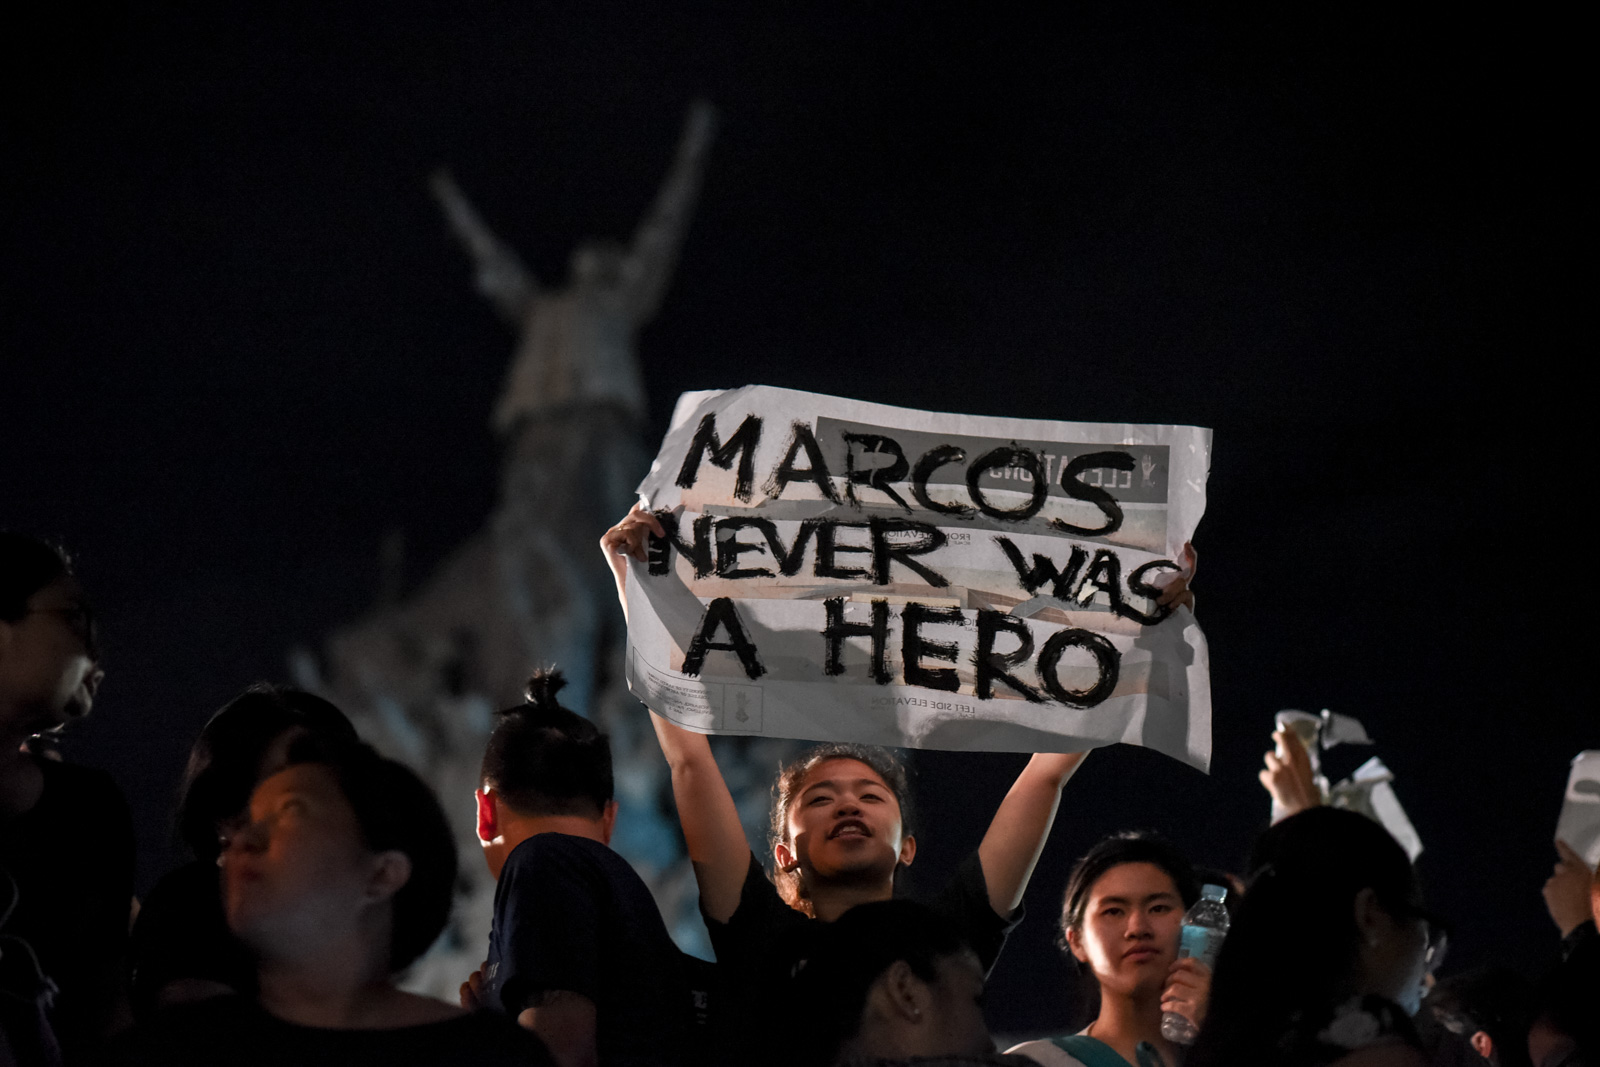 Thousands of Filipinos gather at the People Power Monument along EDSA voicing their dissent on Ferdinand Marcos' surprise burial at the Libingan ng mga Bayani, November 18, Quezon City, Philippines.